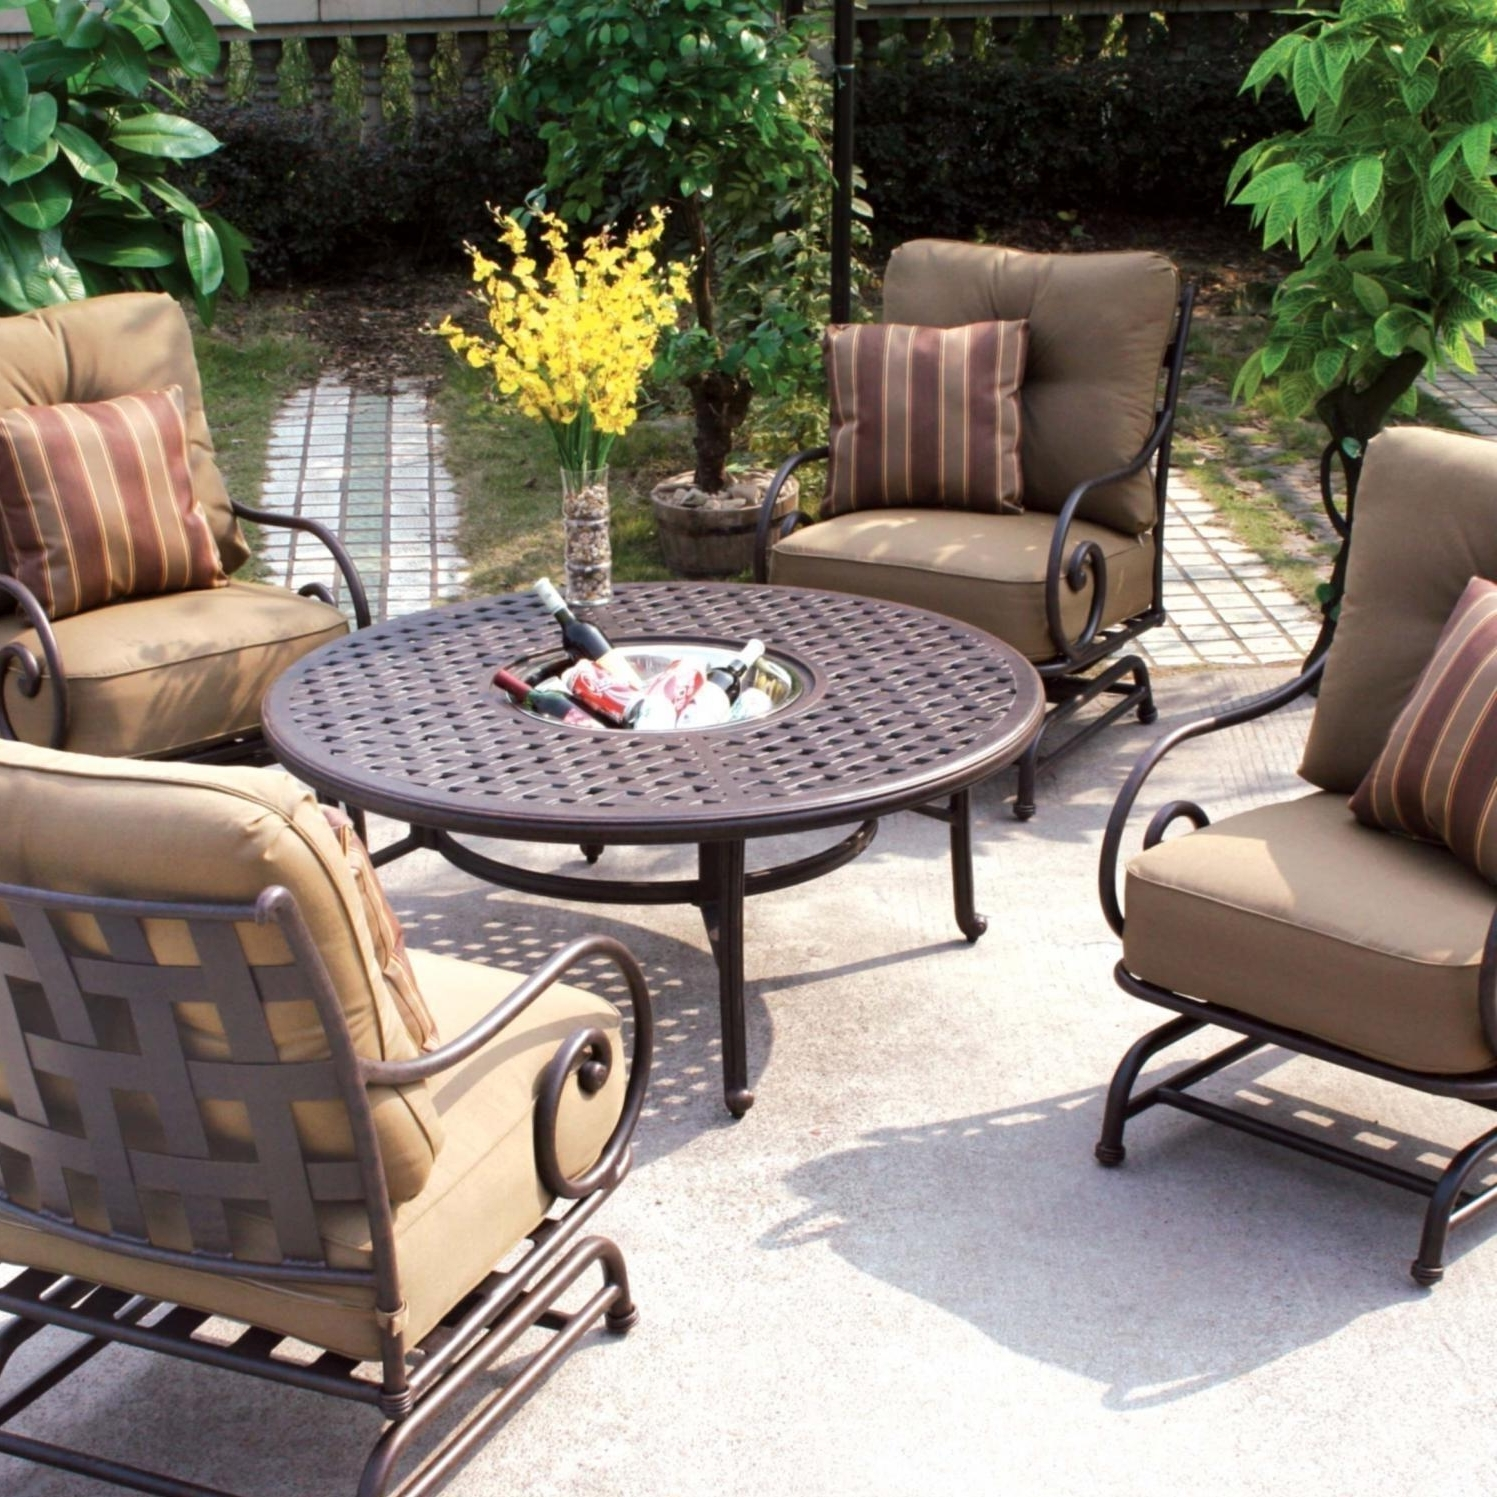 Wood Patio Furniture Conversation Sets Pertaining To Famous Superb Outdoor Furniture Conversation Sets Patio Clearance Wood My (View 14 of 15)